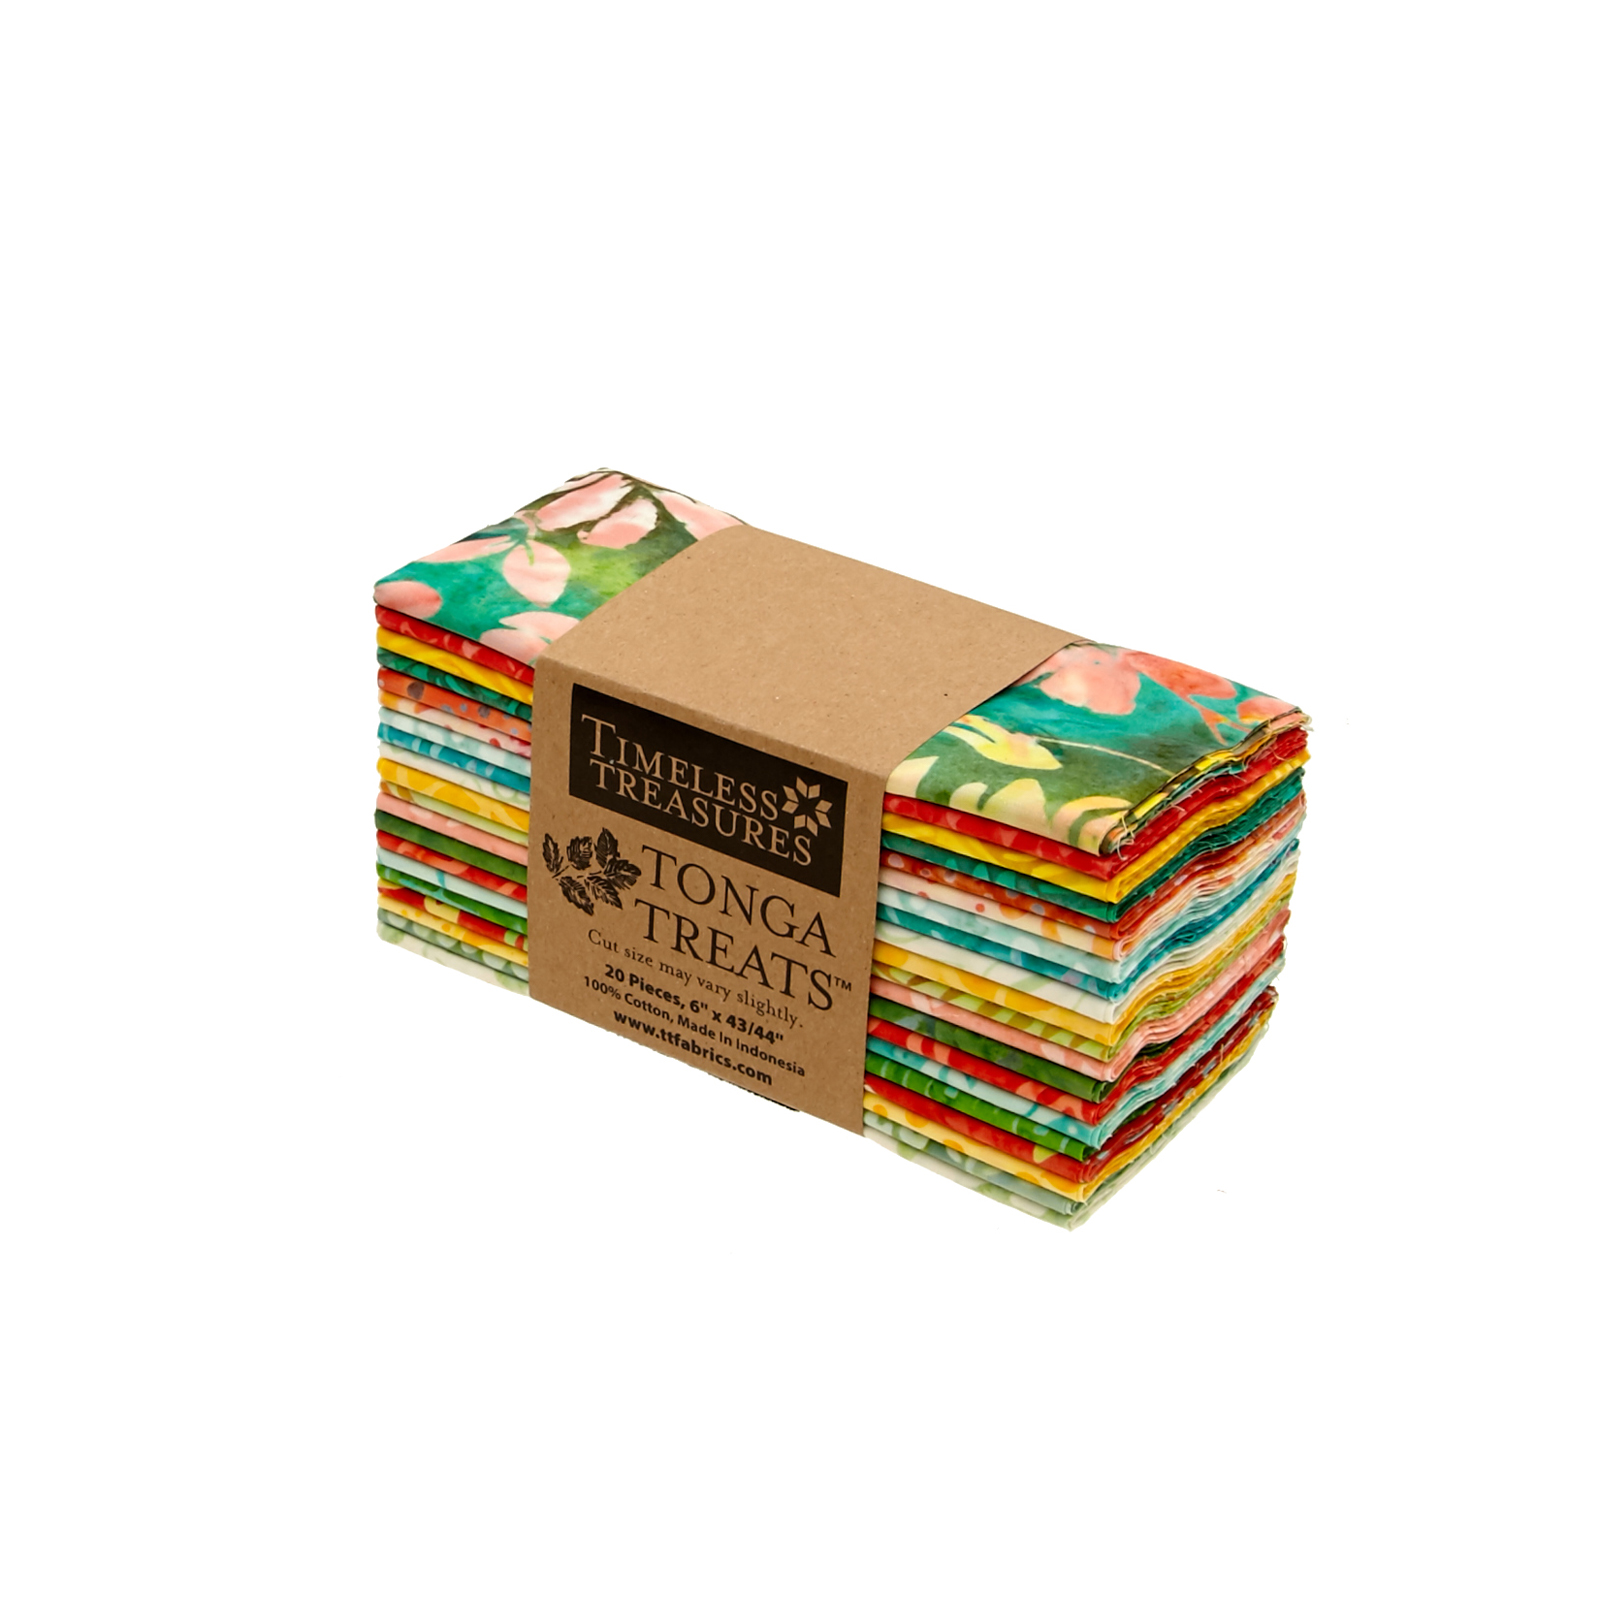 Timeless Treasures Tonga Treat Salsa 6'' Strips by Timeless Treasures in USA